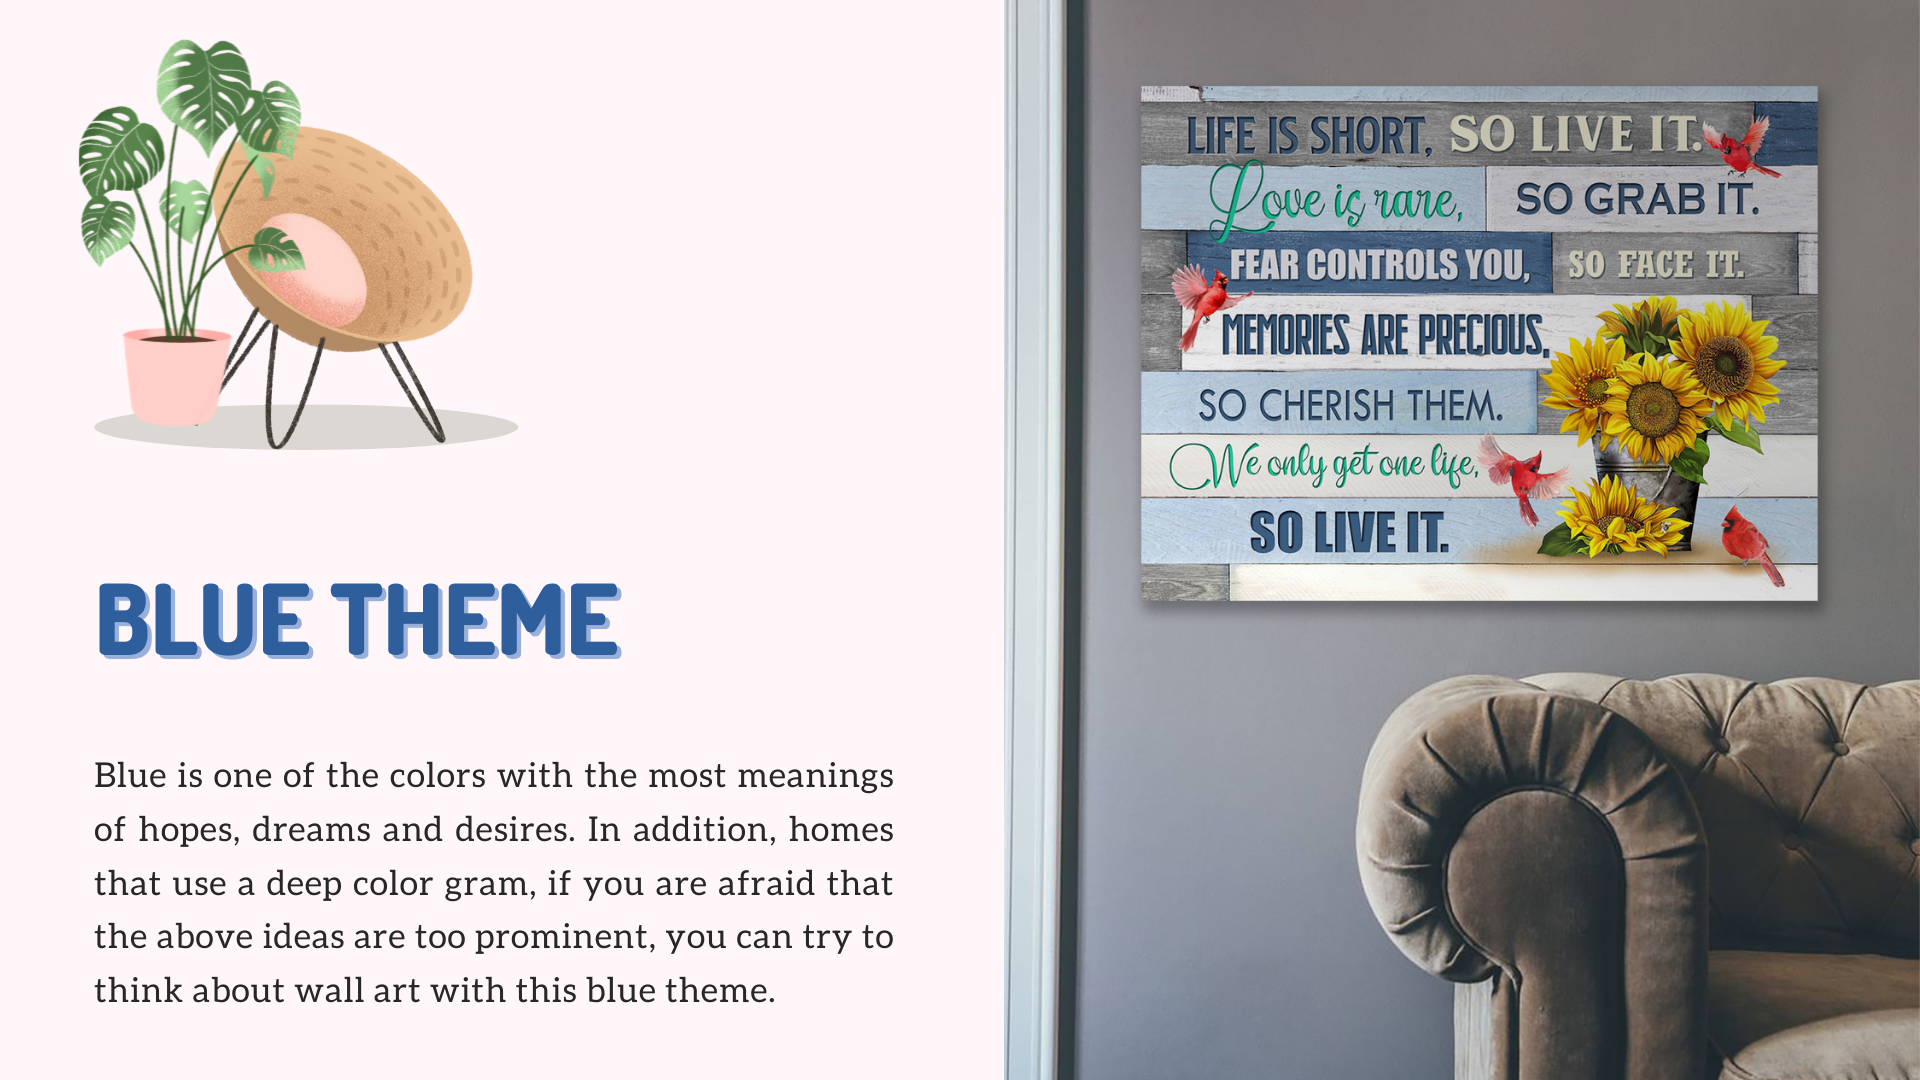 Life is short so live it meaningful wall art blue theme decor idea from stunning gift store